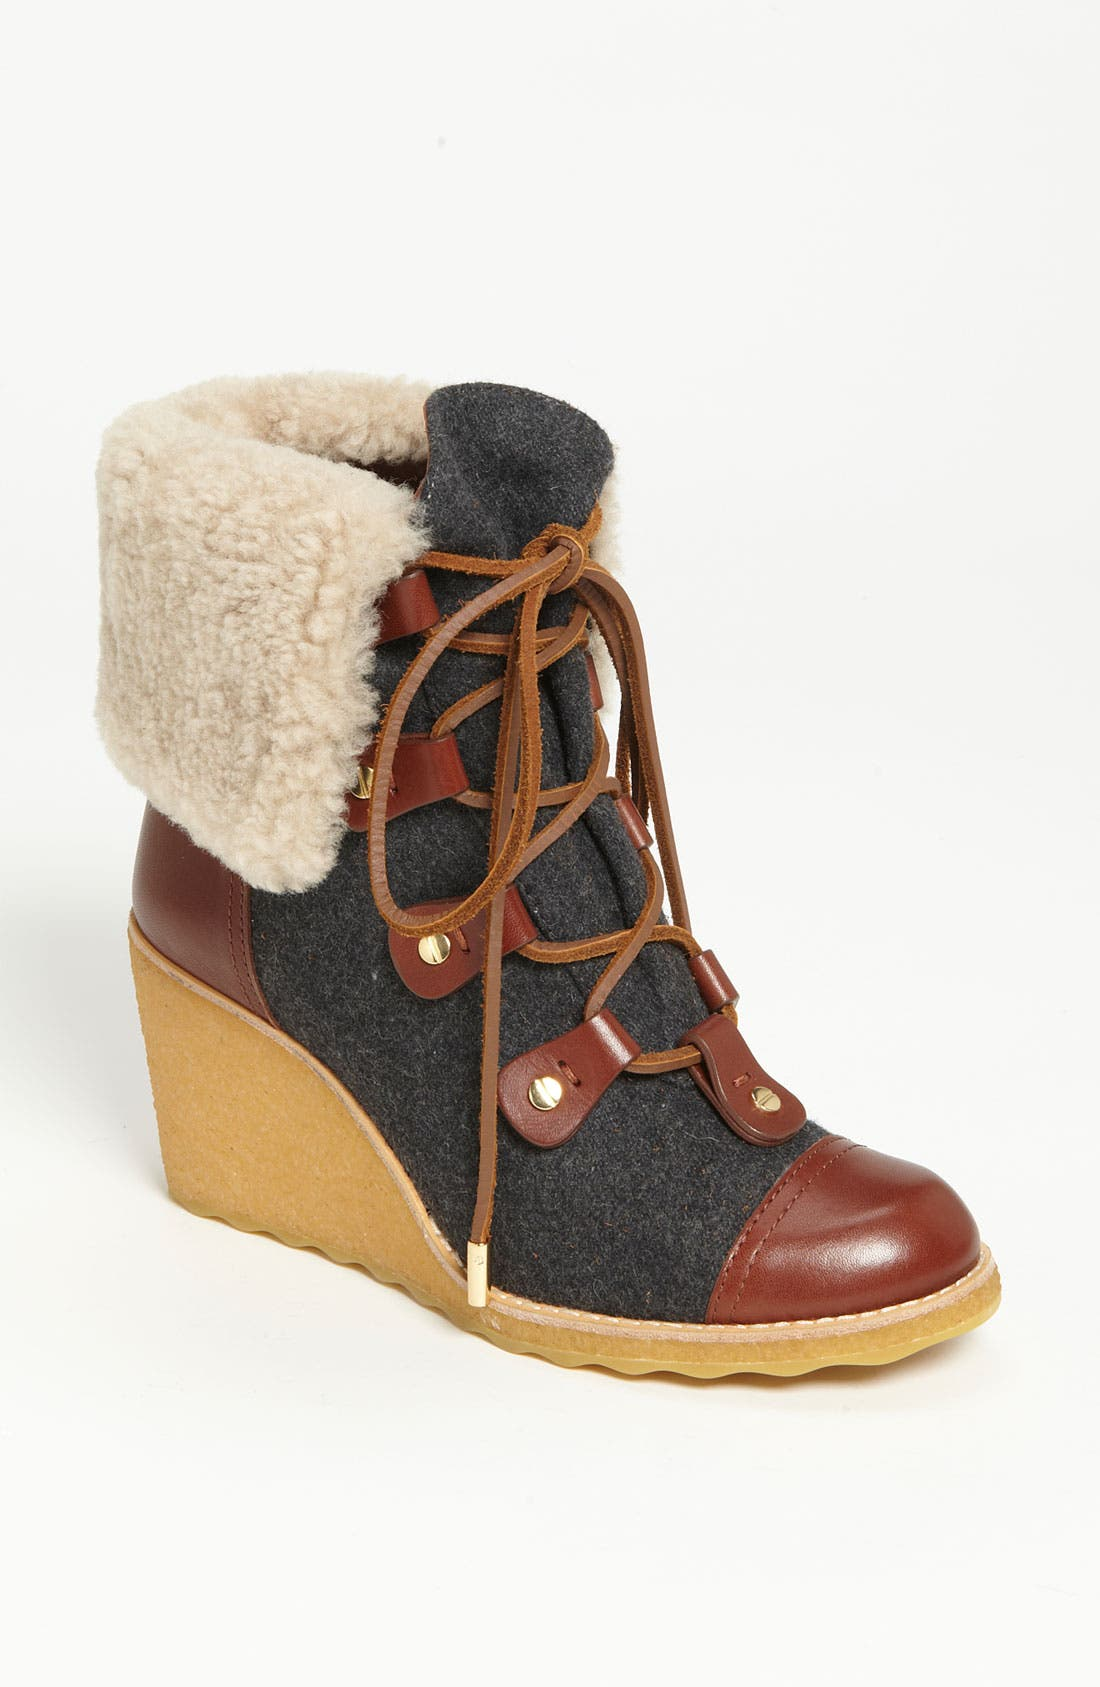 Main Image - Tory Burch 'Marley' Wedge Bootie